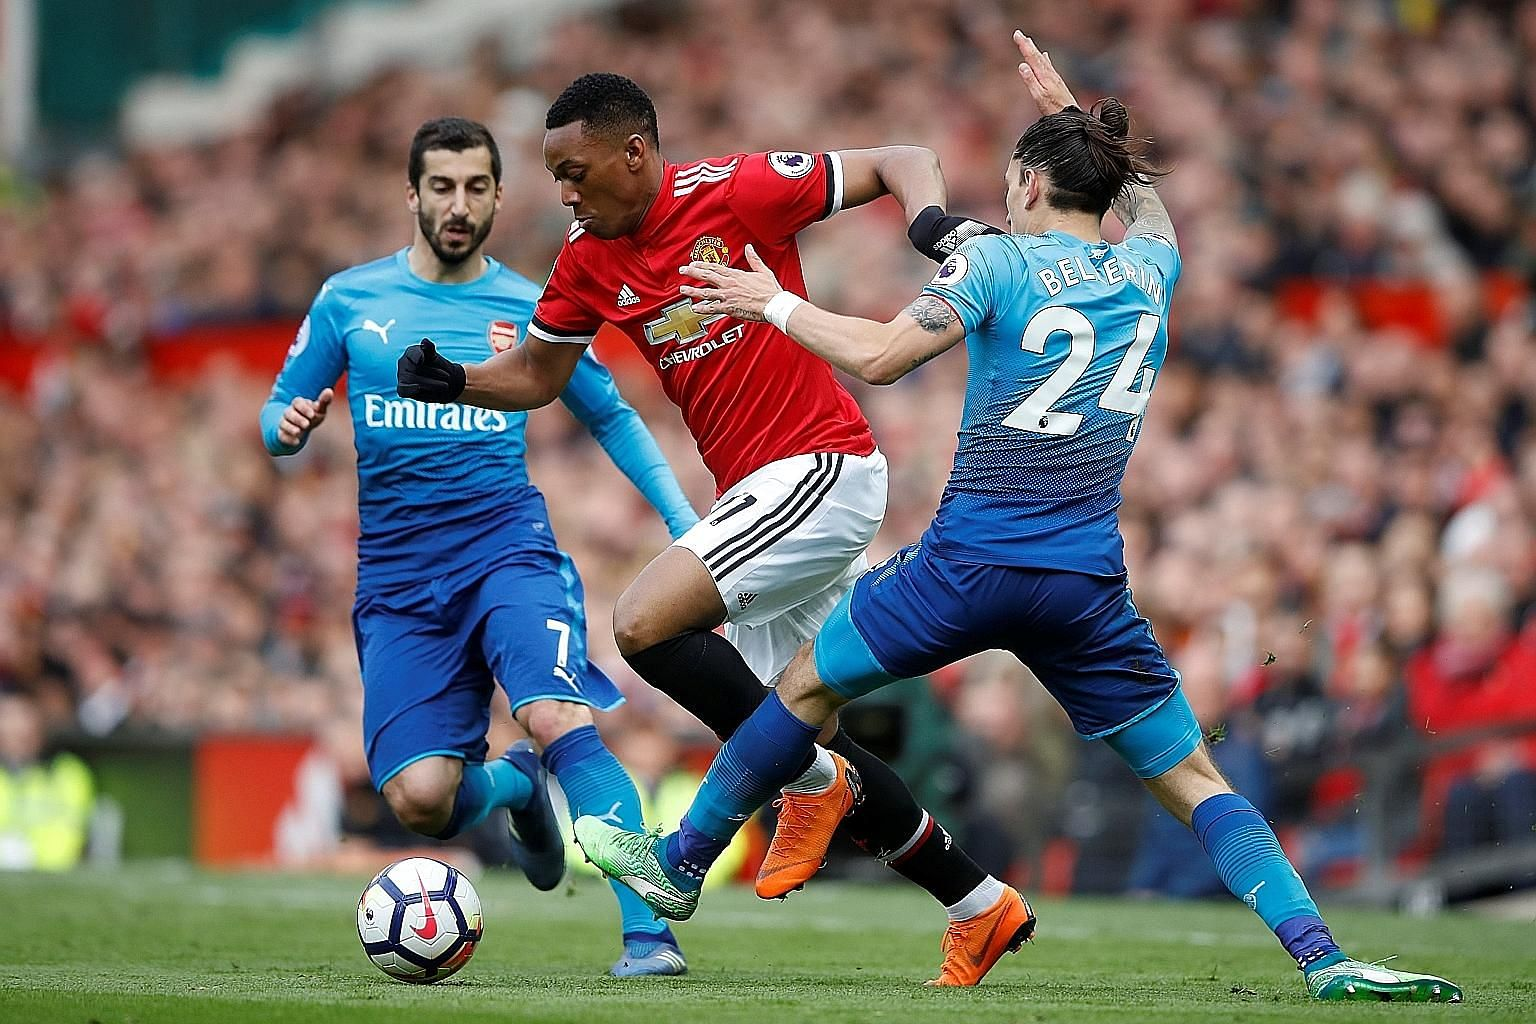 The playing time of Anthony Martial, seen here against Arsenal, had been further reduced following the January signing of Alexis Sanchez.